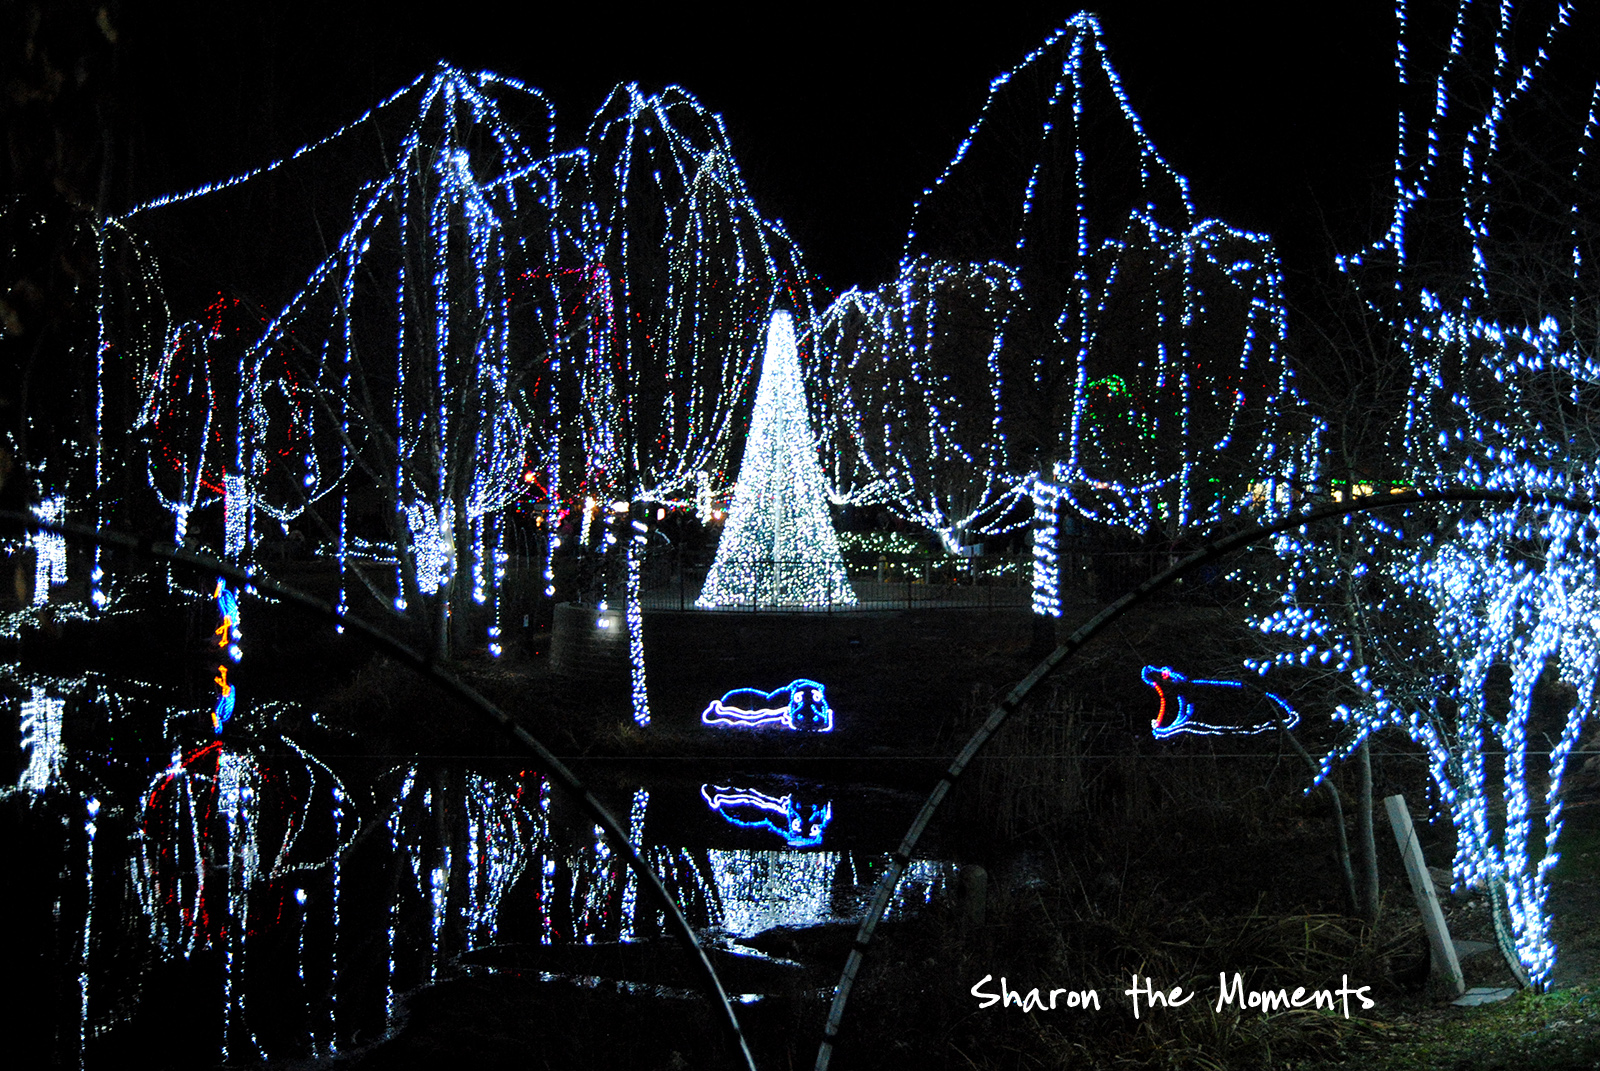 Family Fun at the Columbus Zoo Winter Wildlights|Sharon the Moments blog